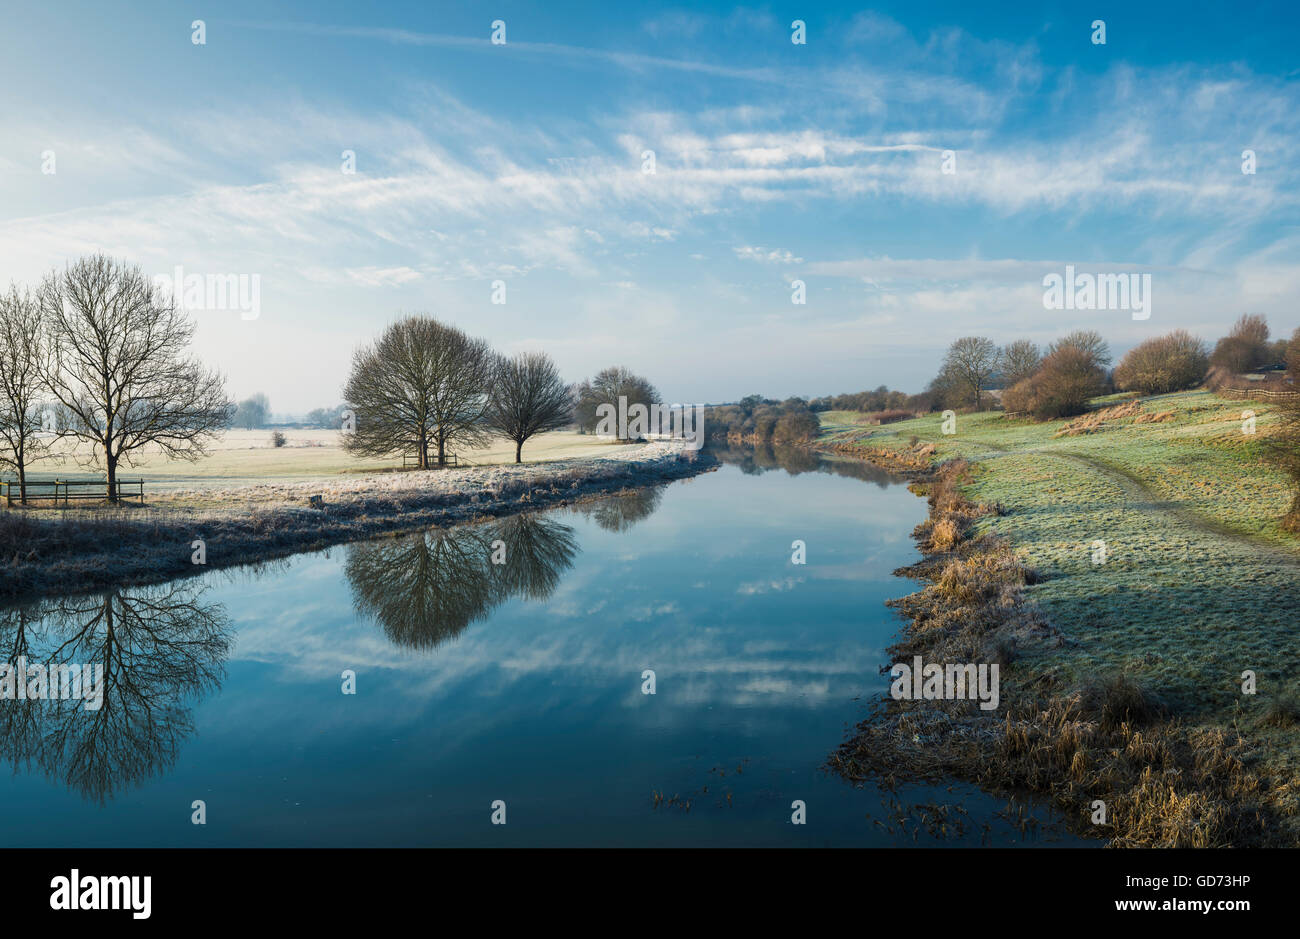 the-river-nene-on-an-icy-cold-january-da